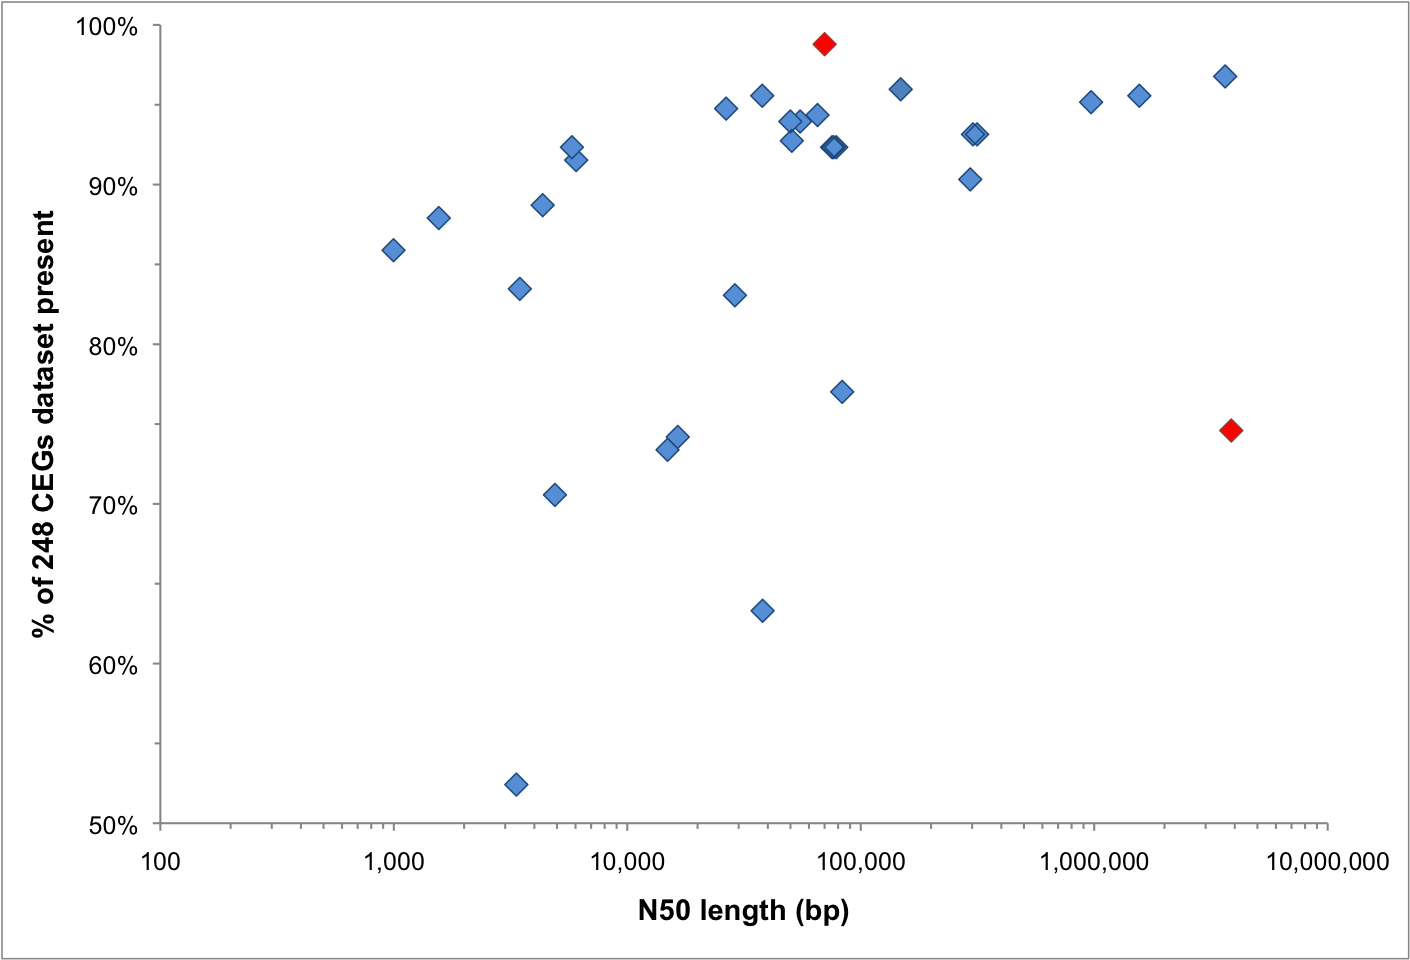 Figure 2: CEGMA results vs N50 length — red data points highlight assemblies with highest values of %248 CEGs or N50 length. Click to enlarge.